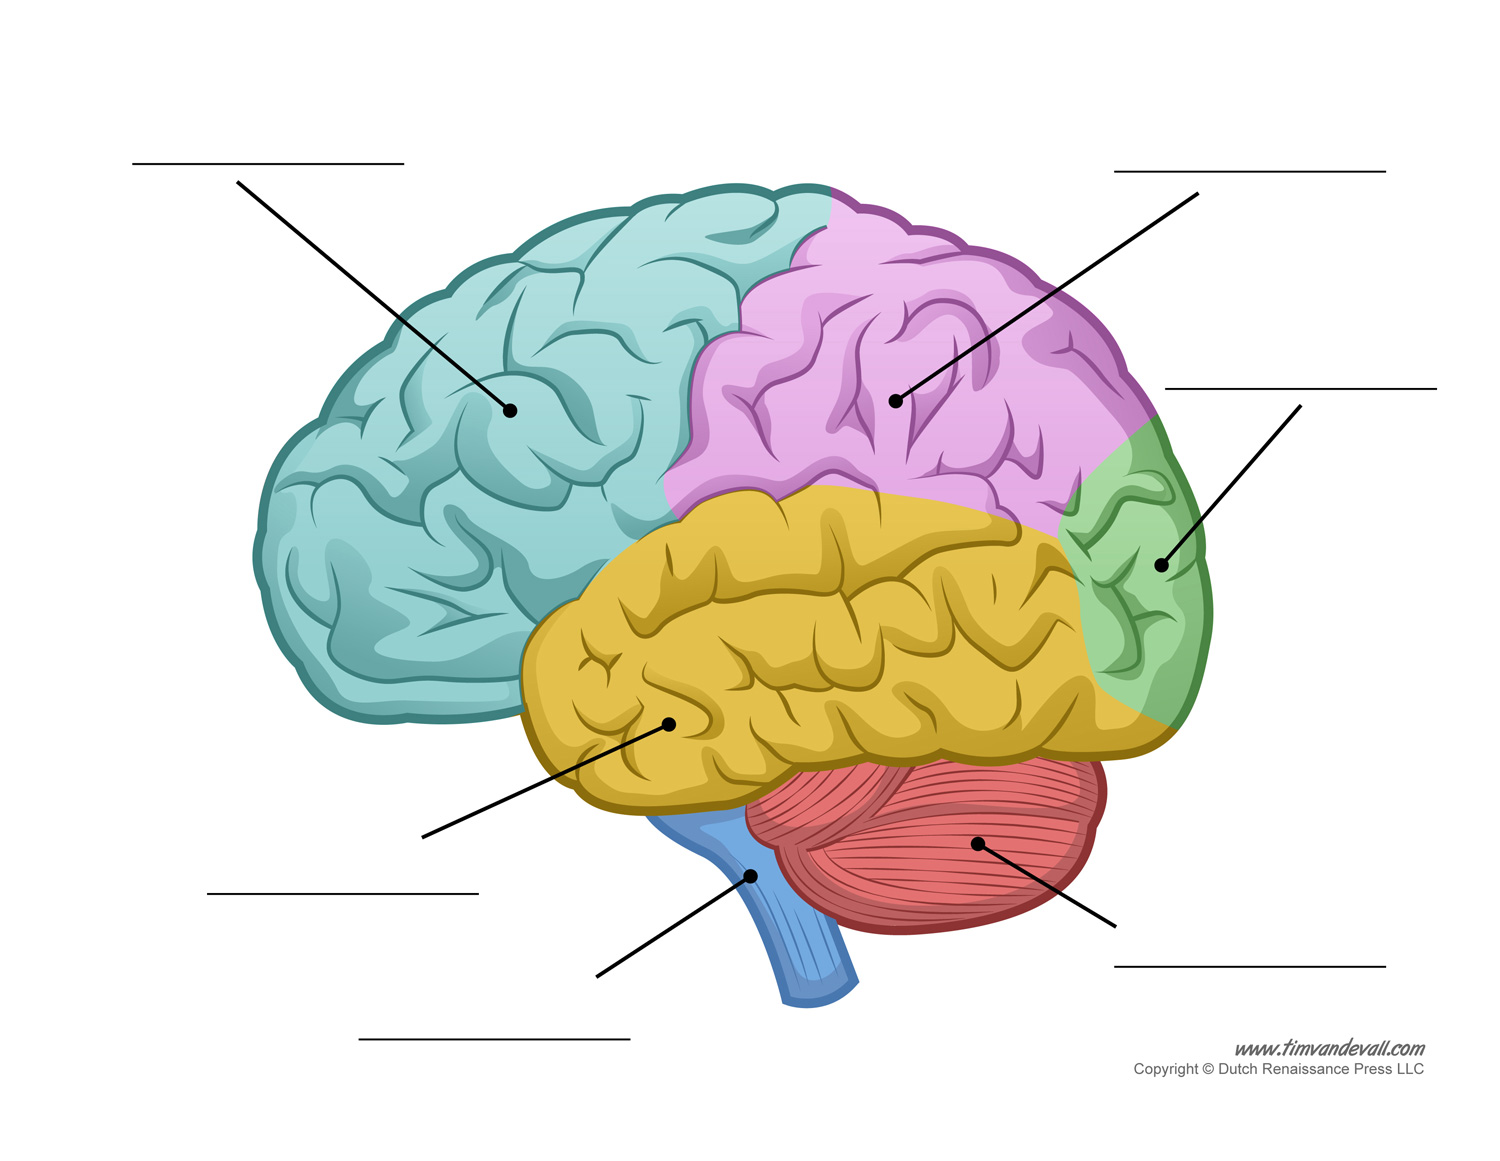 worksheet Brain Labeling Worksheet human brain diagram labeled unlabled and blank parts of the brain